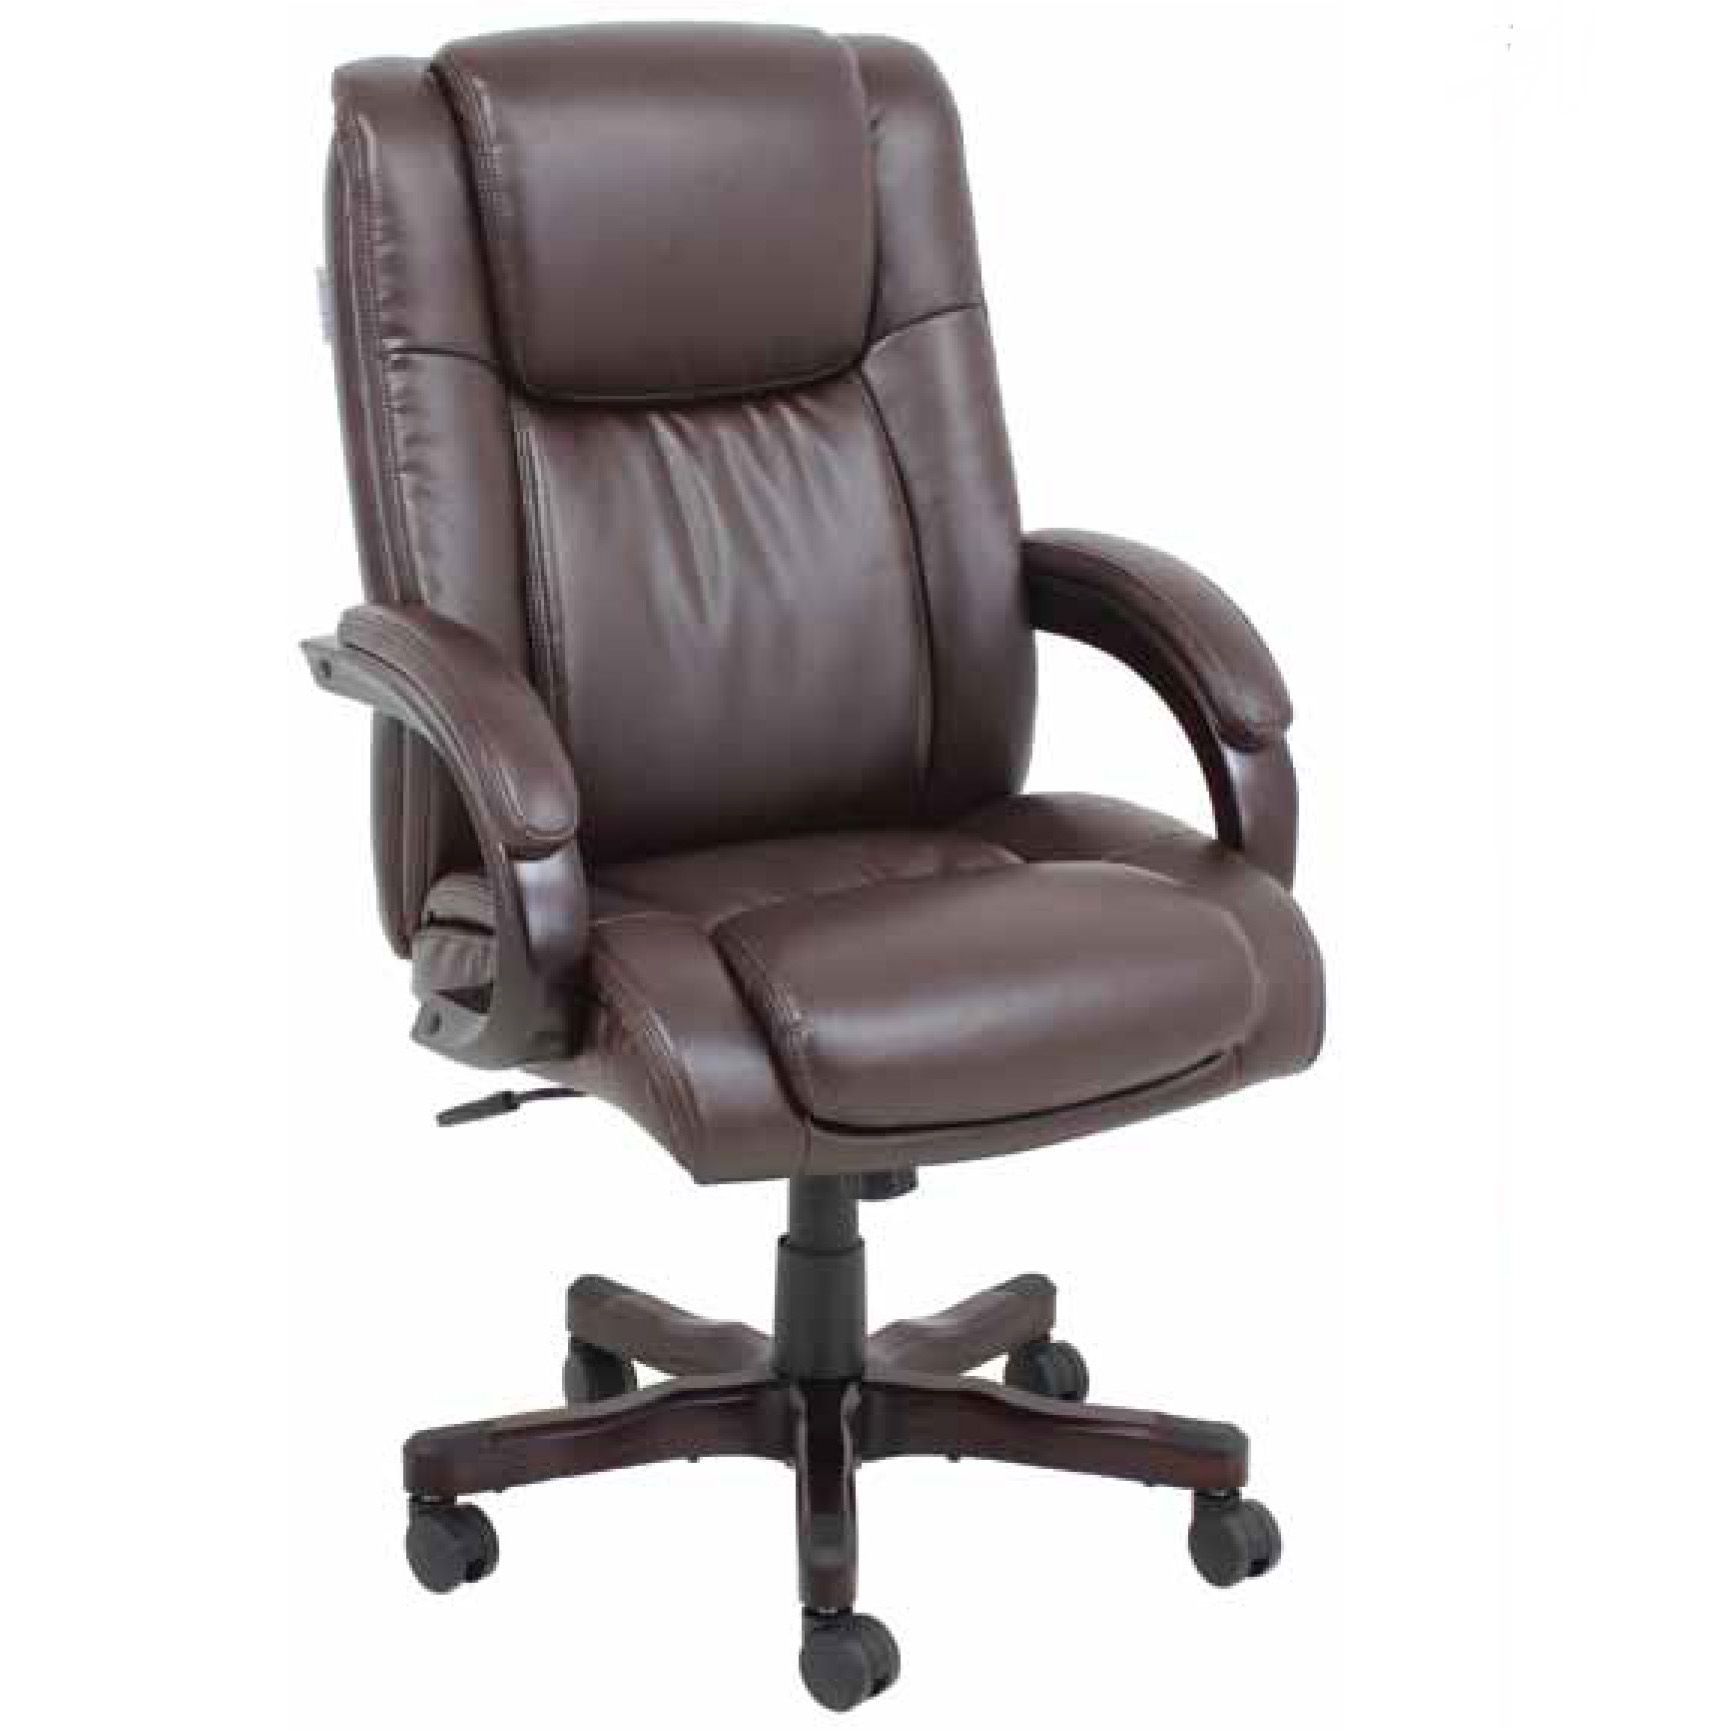 Home Office Desk Chair Barcalounger Titan Ii Home Office Desk Chair Recliner